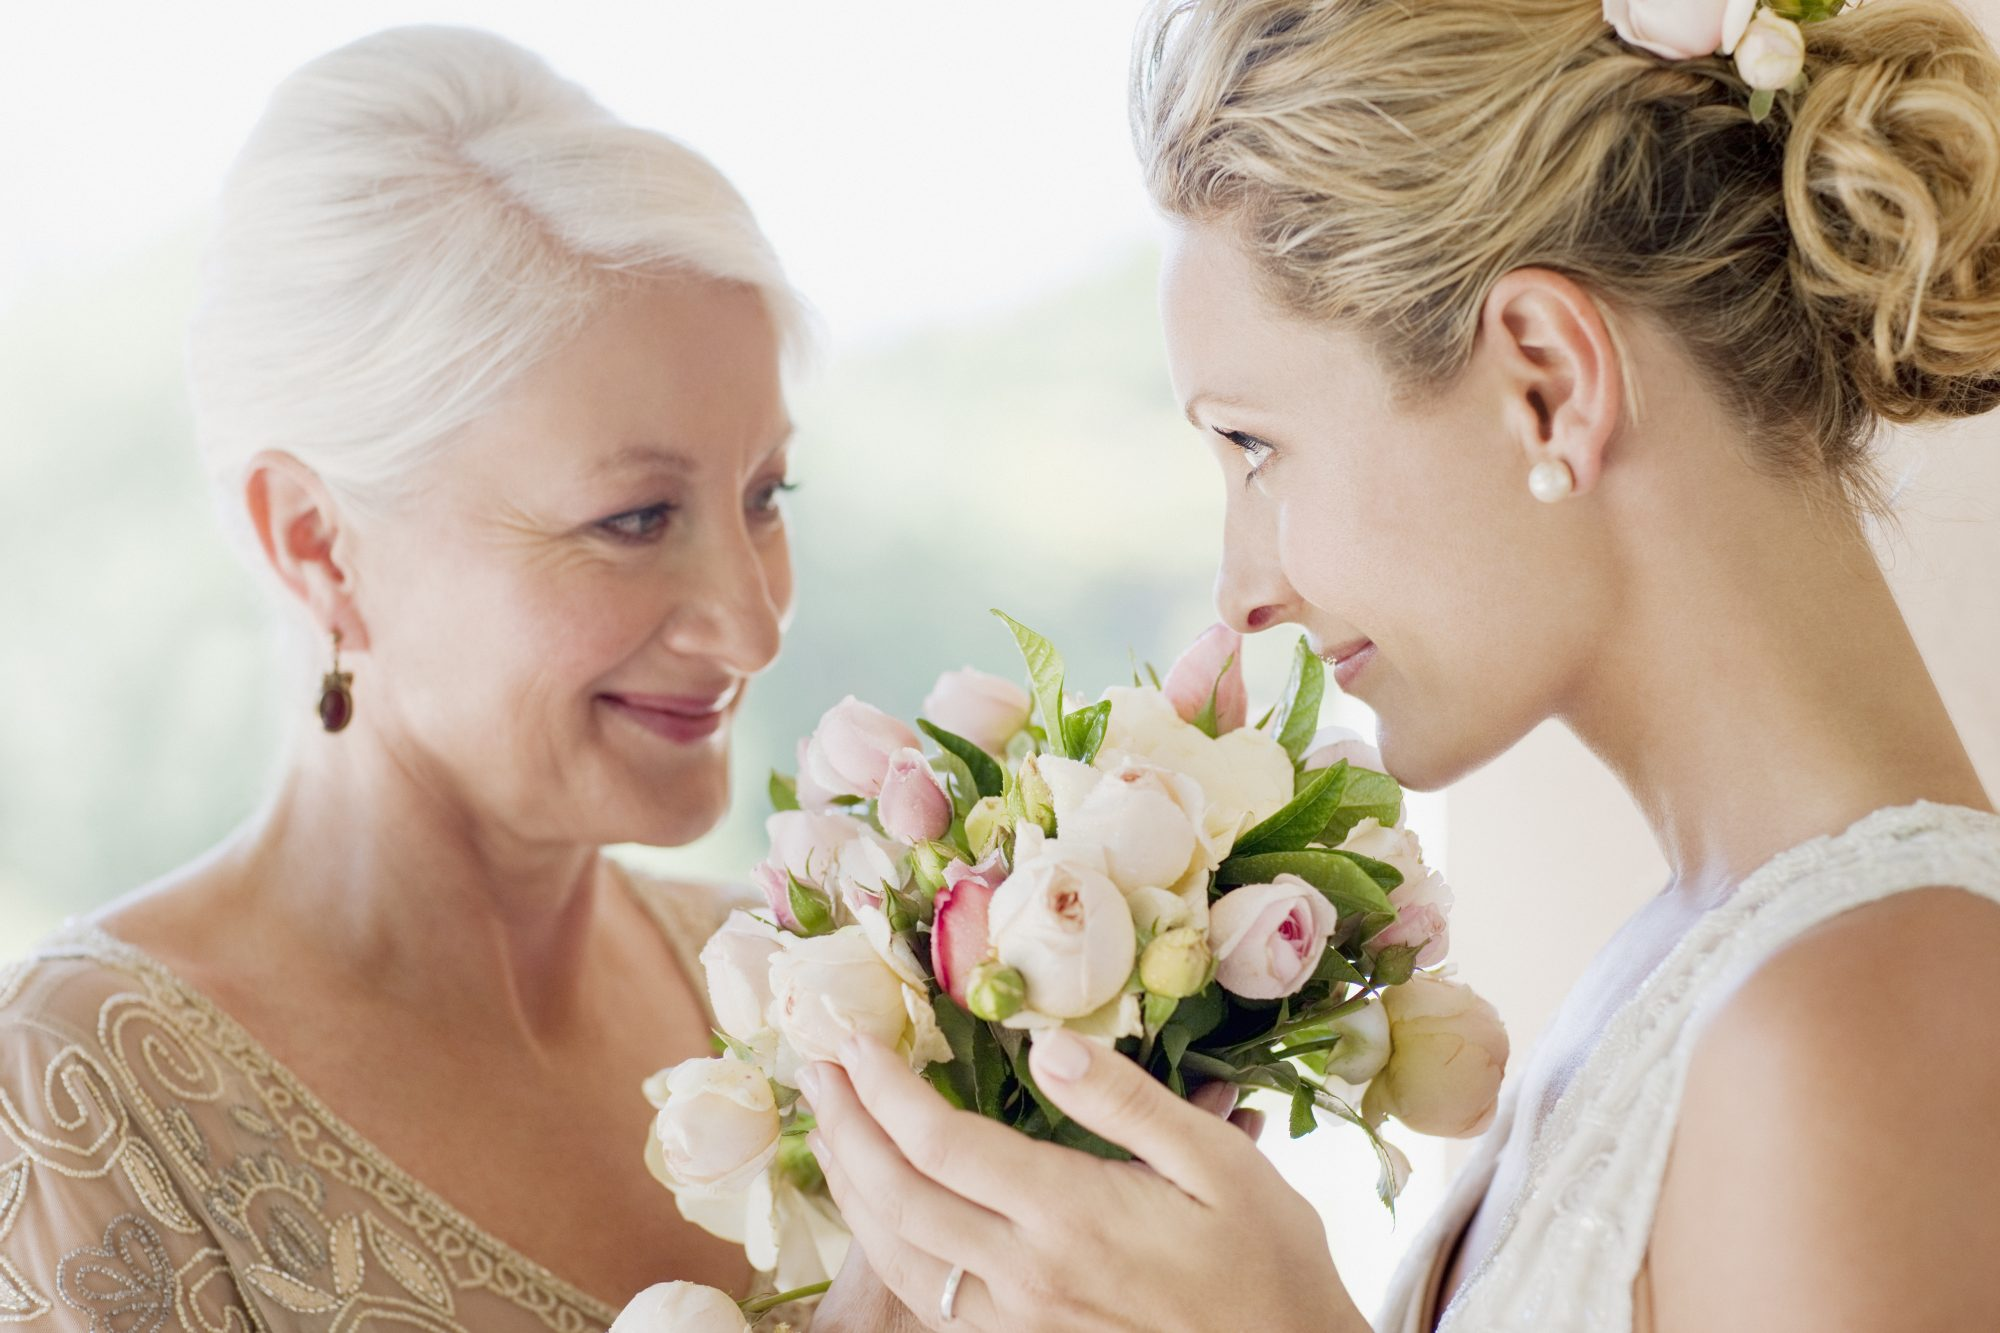 Let's Mom Hold Your Bouquet